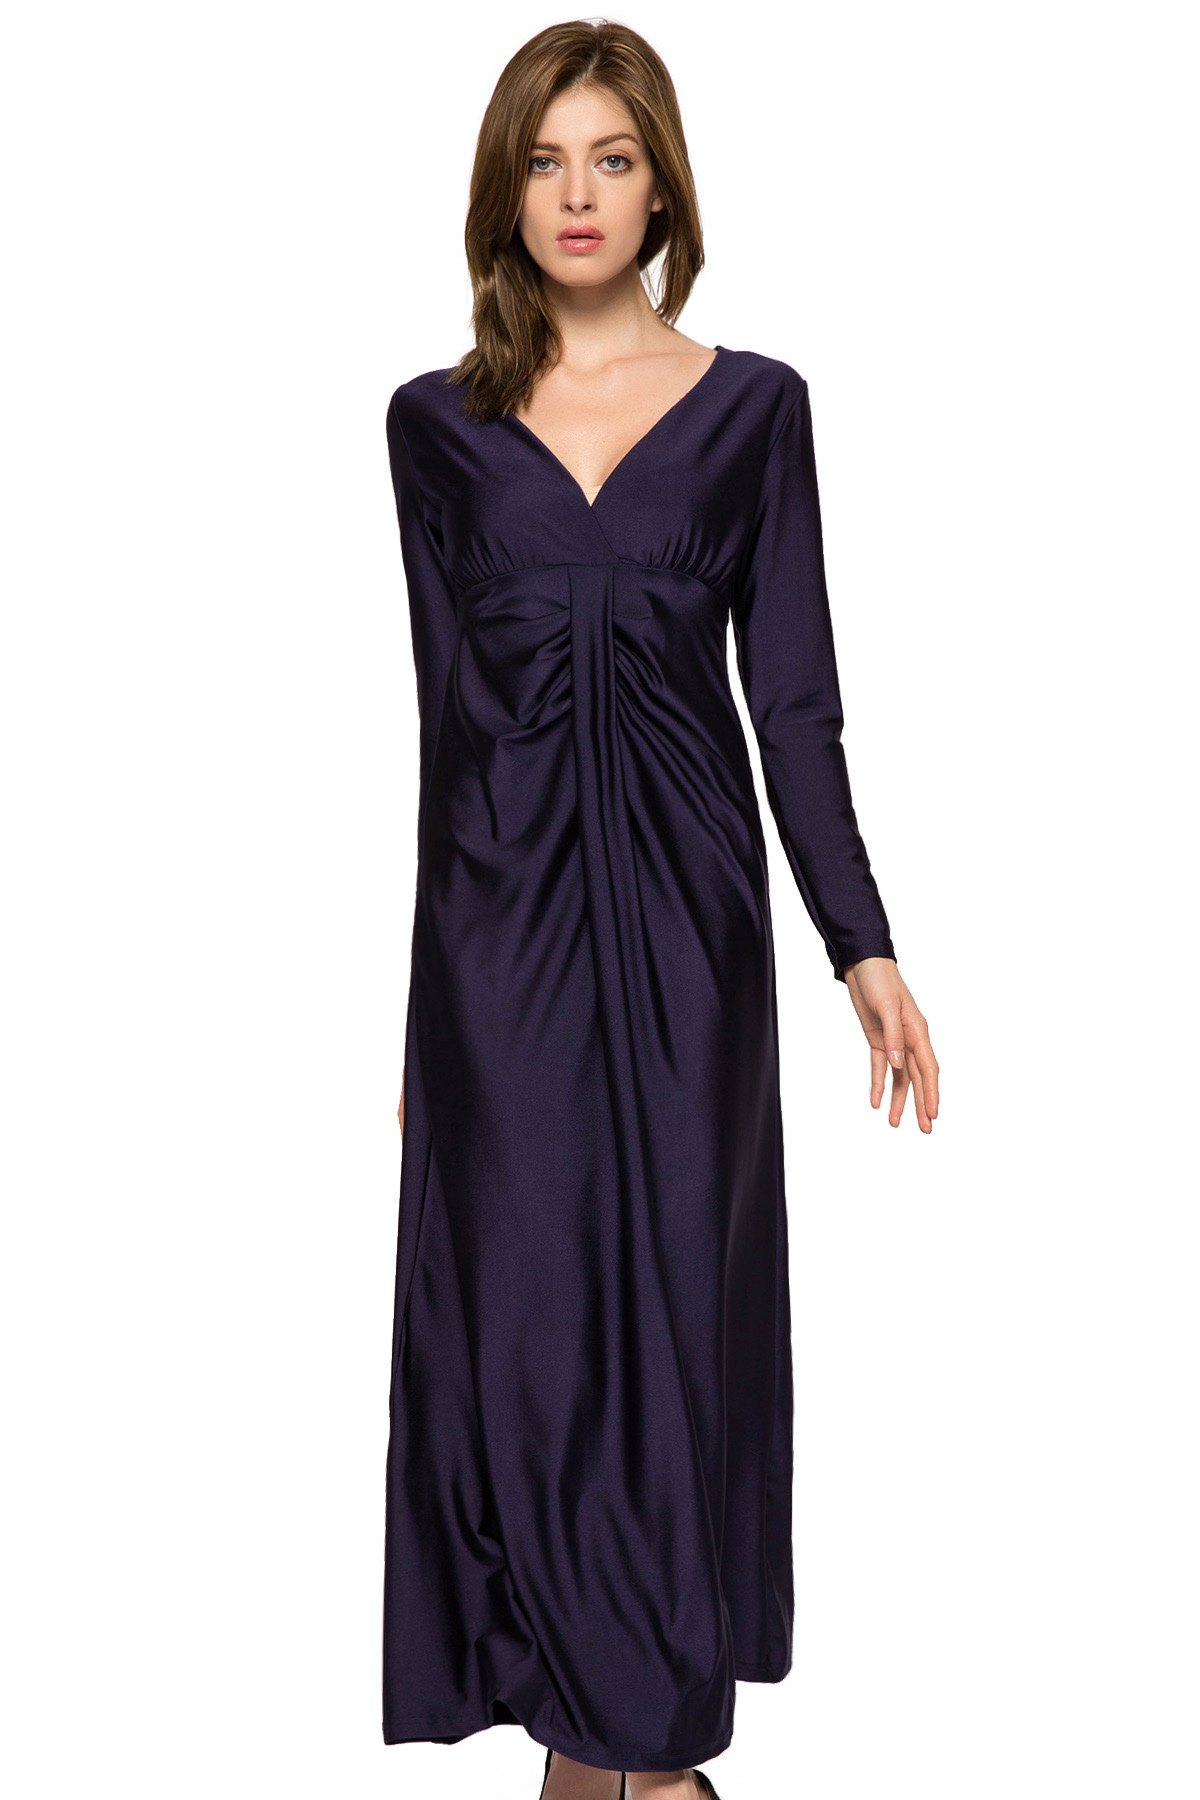 Plunging Neck Solid Color Dress - DEEP BLUE XS